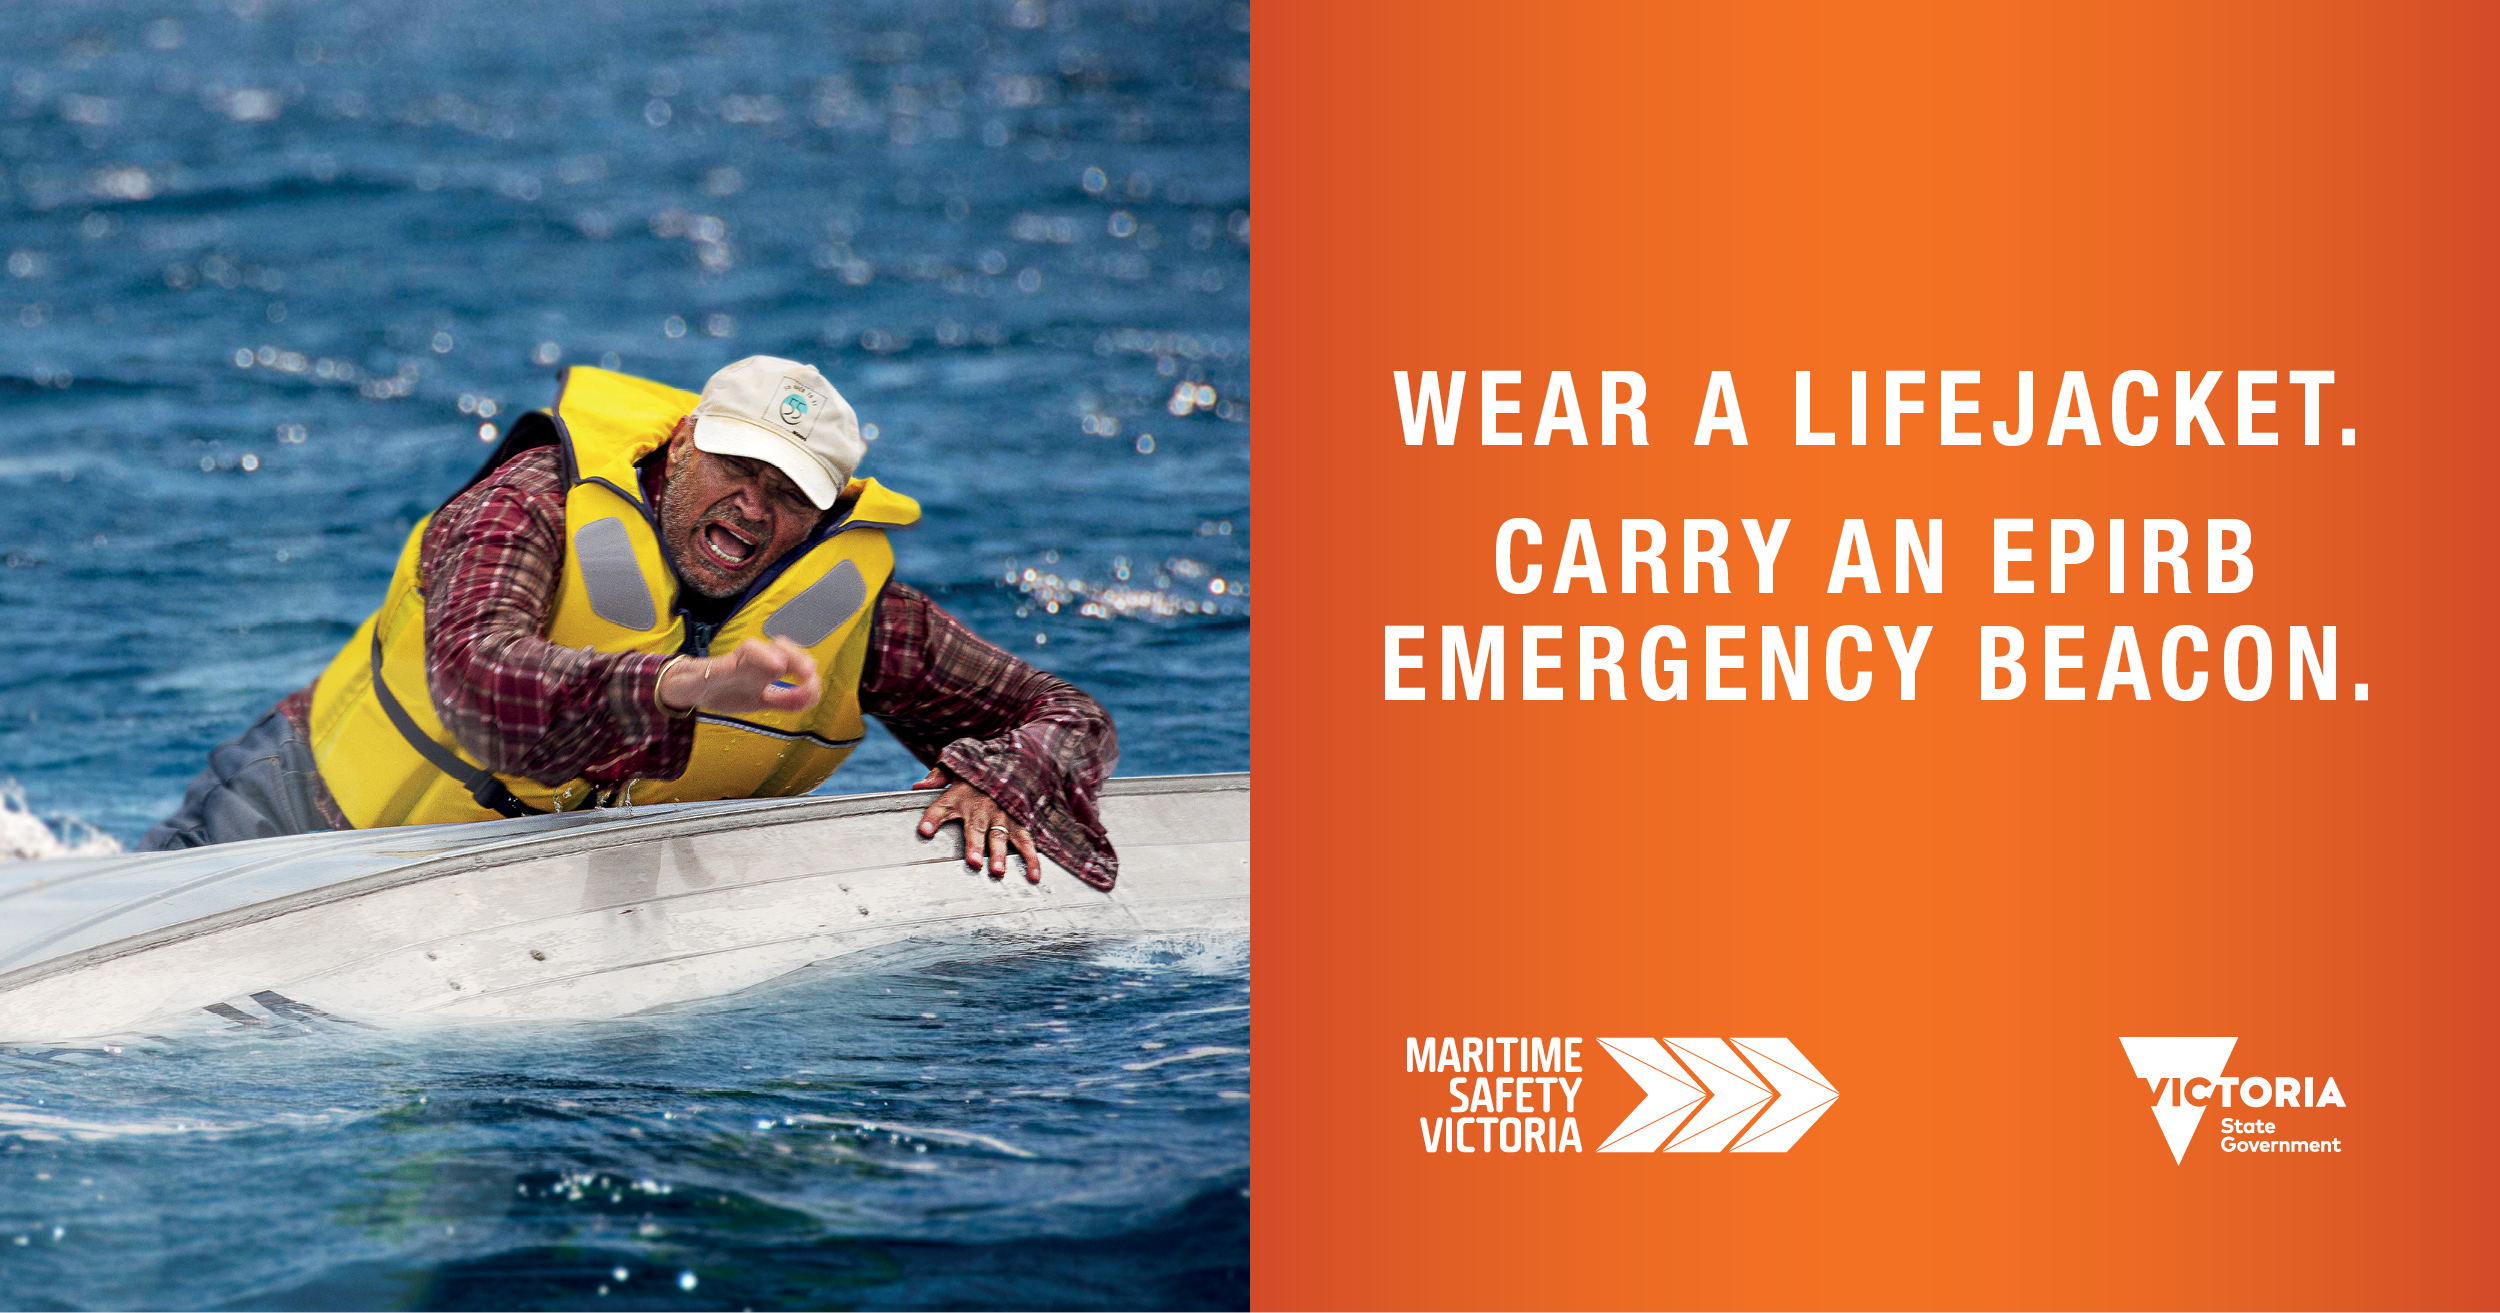 Wear a lifejacket - boater, Facebook